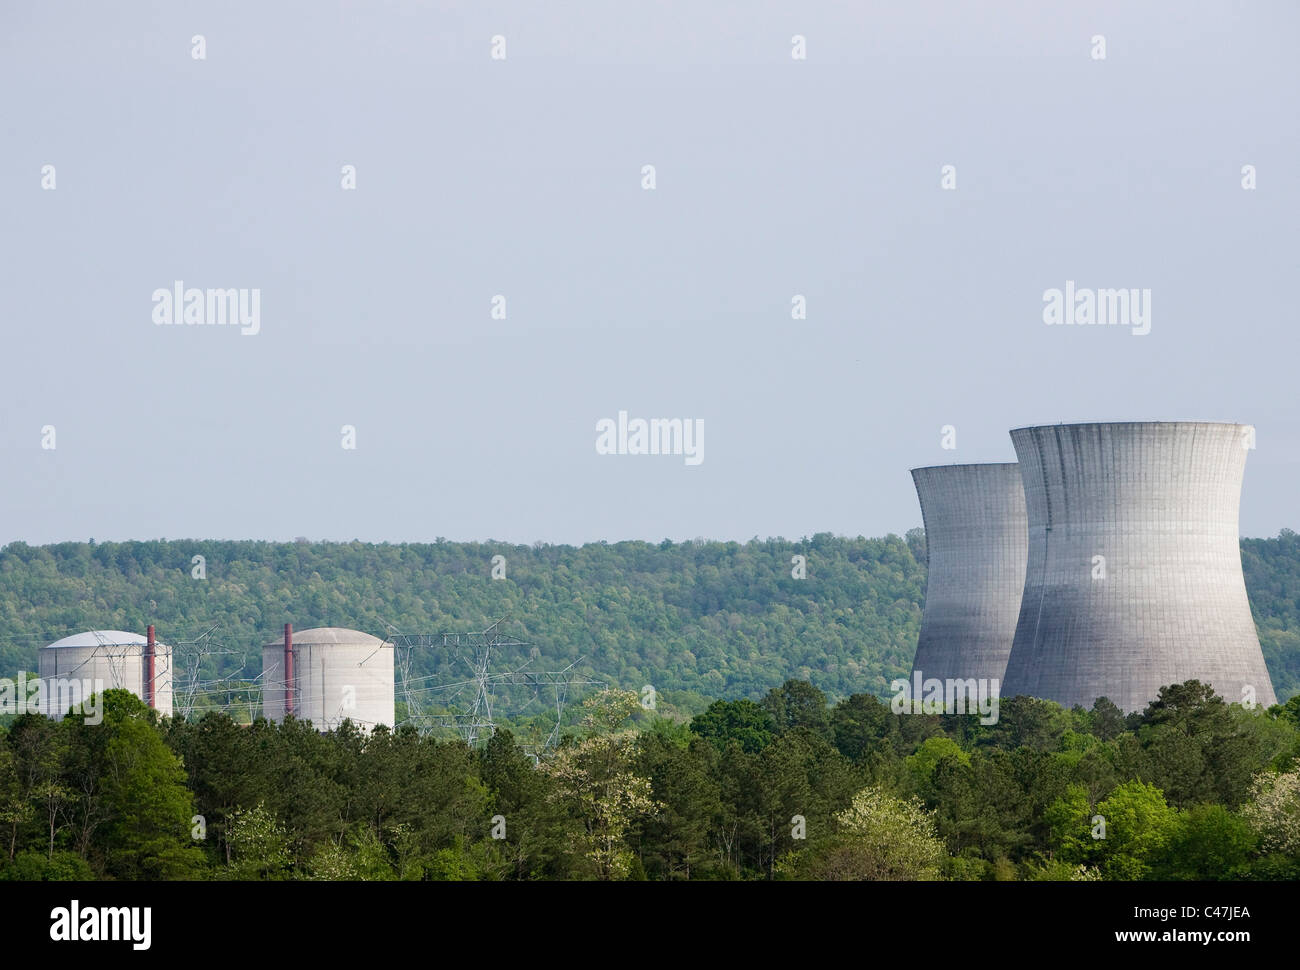 The unfinished Bellefonte Nuclear Power Plant. - Stock Image